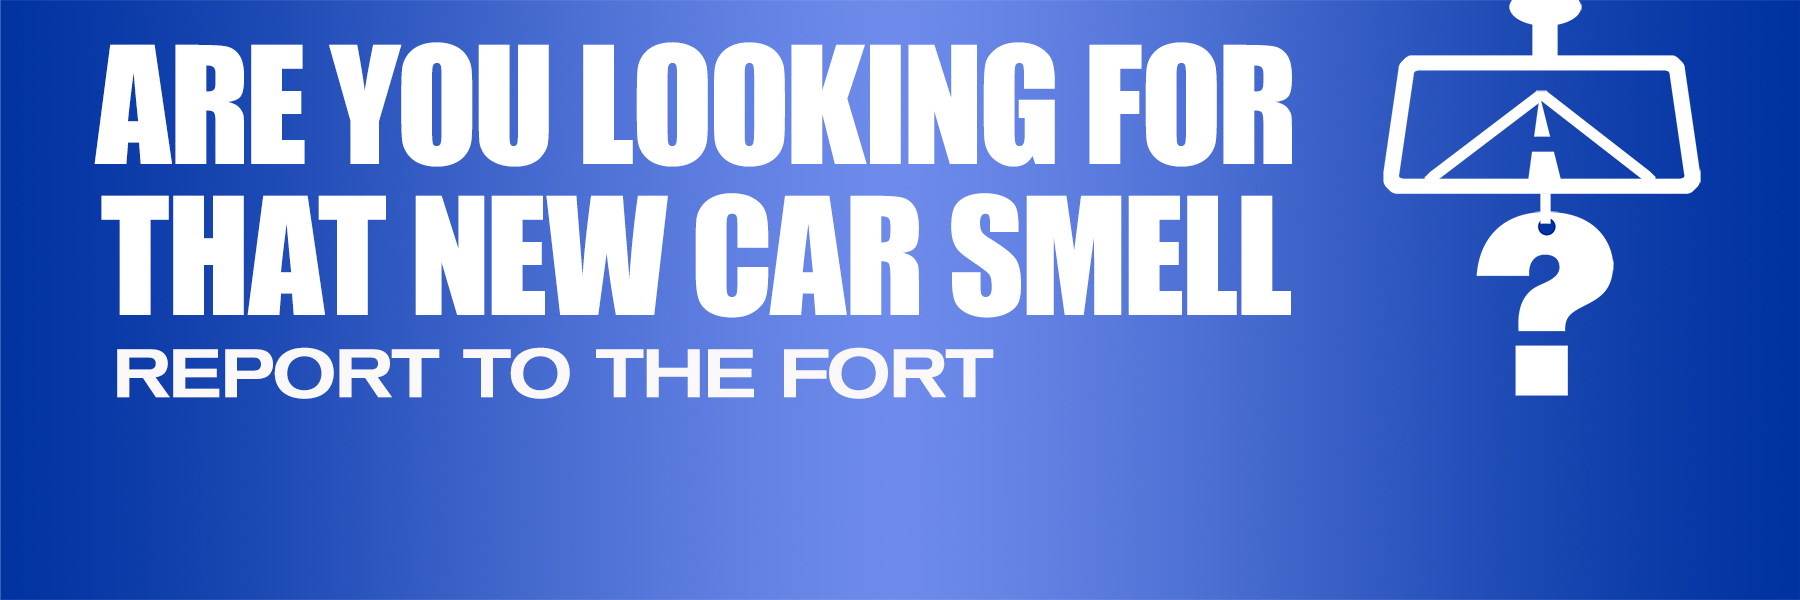 New car smell promotional banner